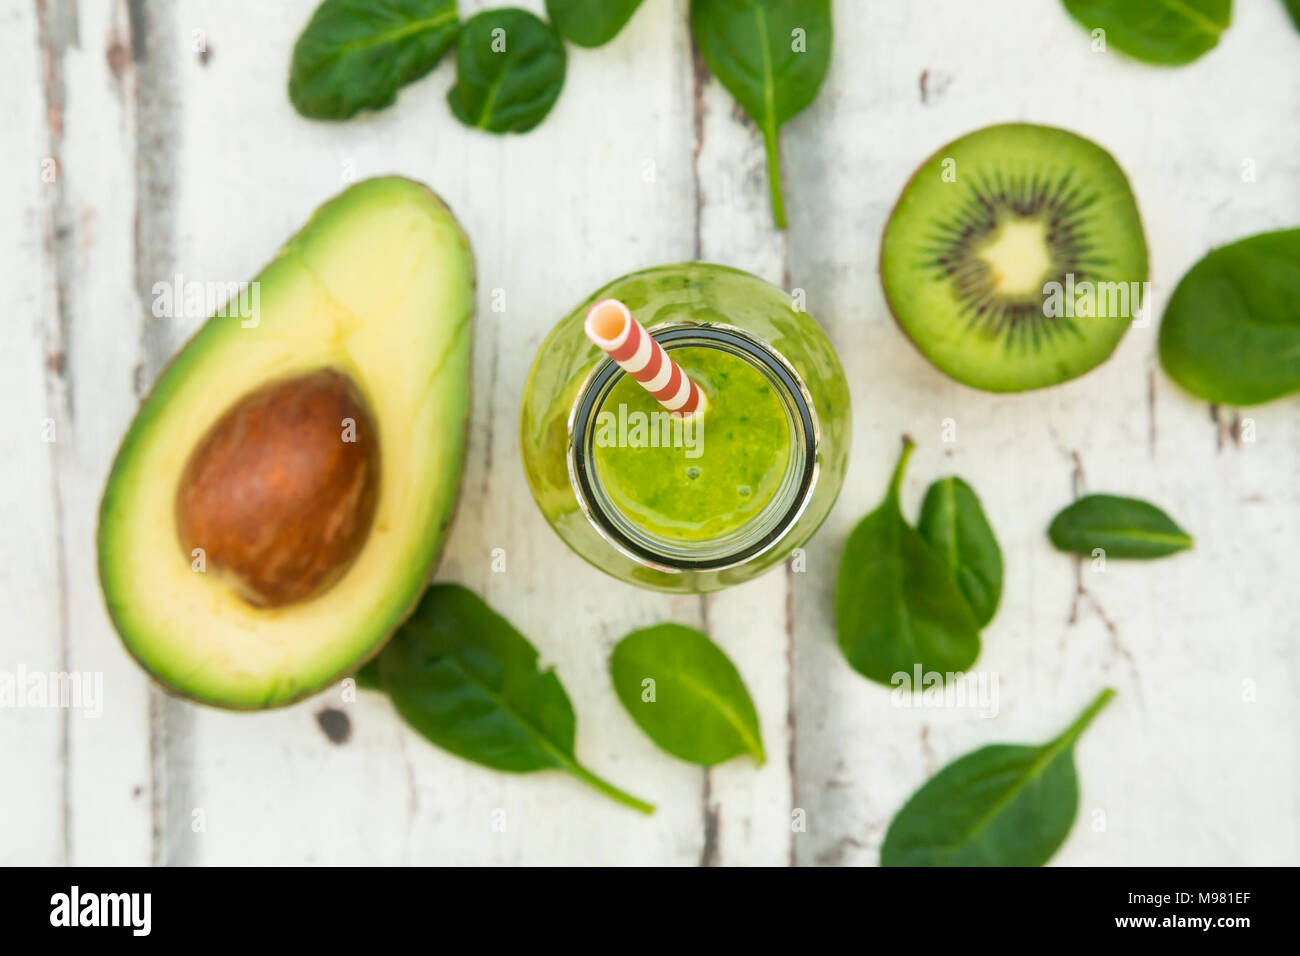 Green smoothie, detox, with avocado, baby spinach and kiwi - Stock Image